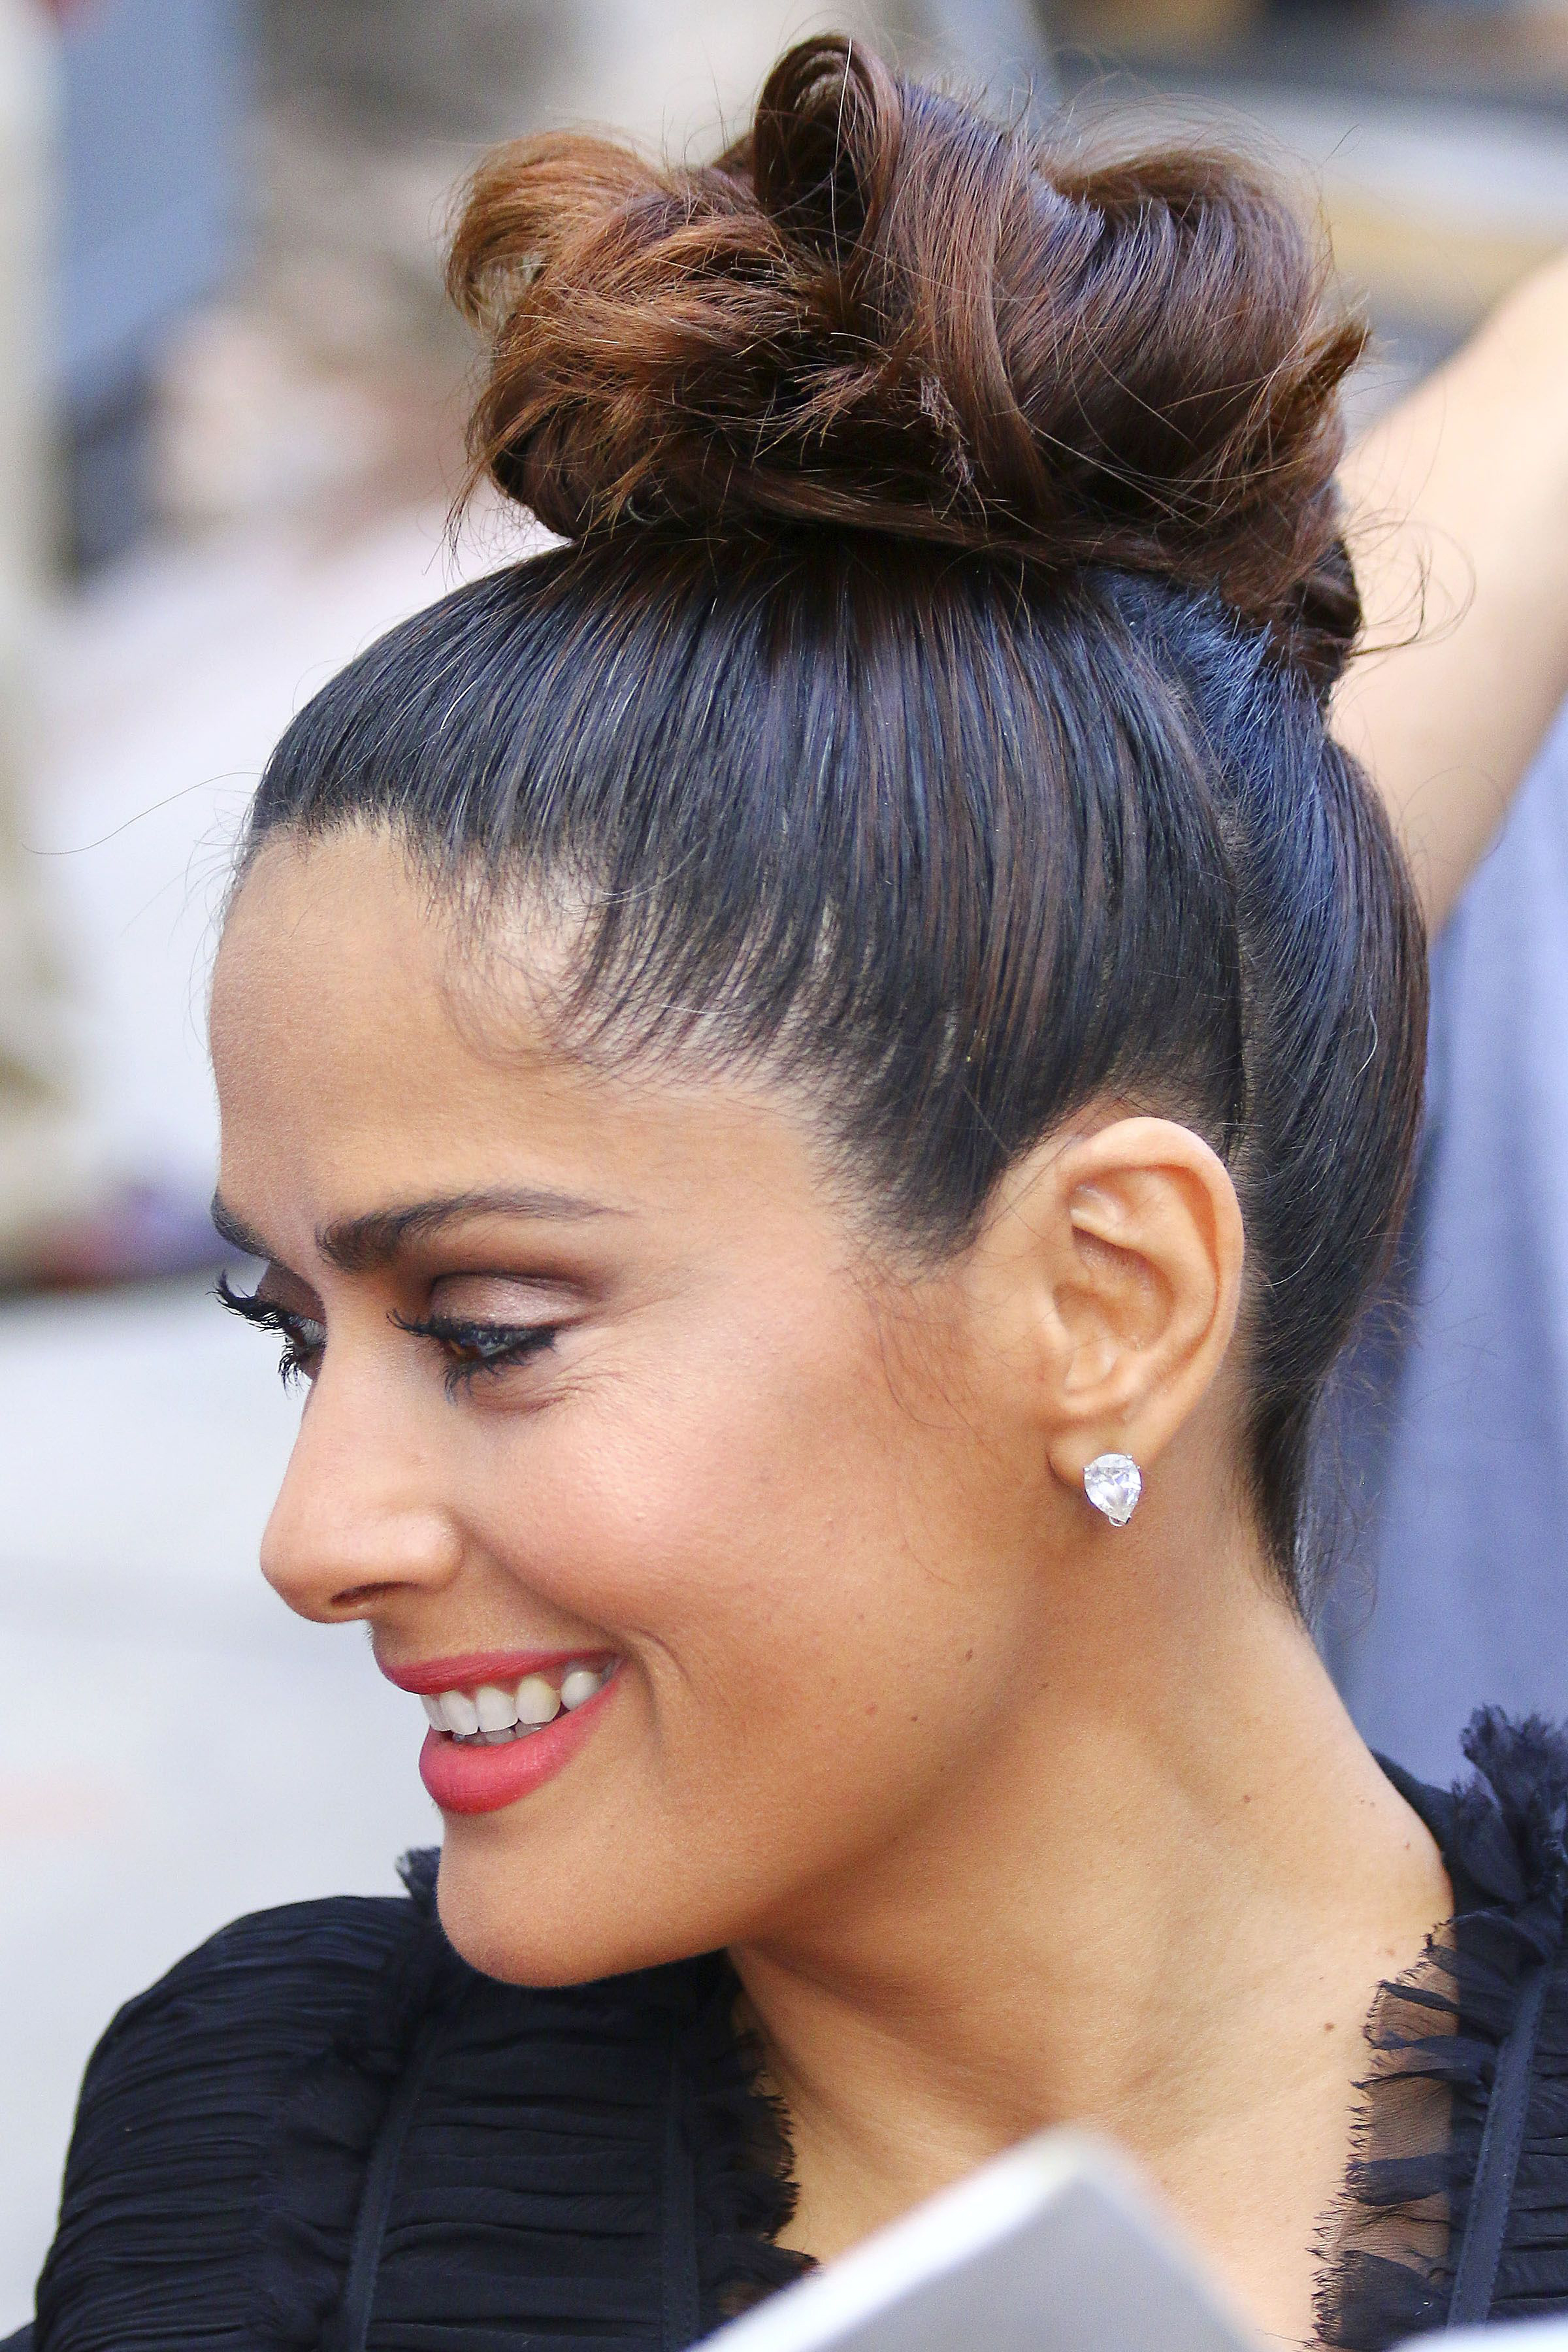 salma hayek hairstyles : Hairstyles for thick hair